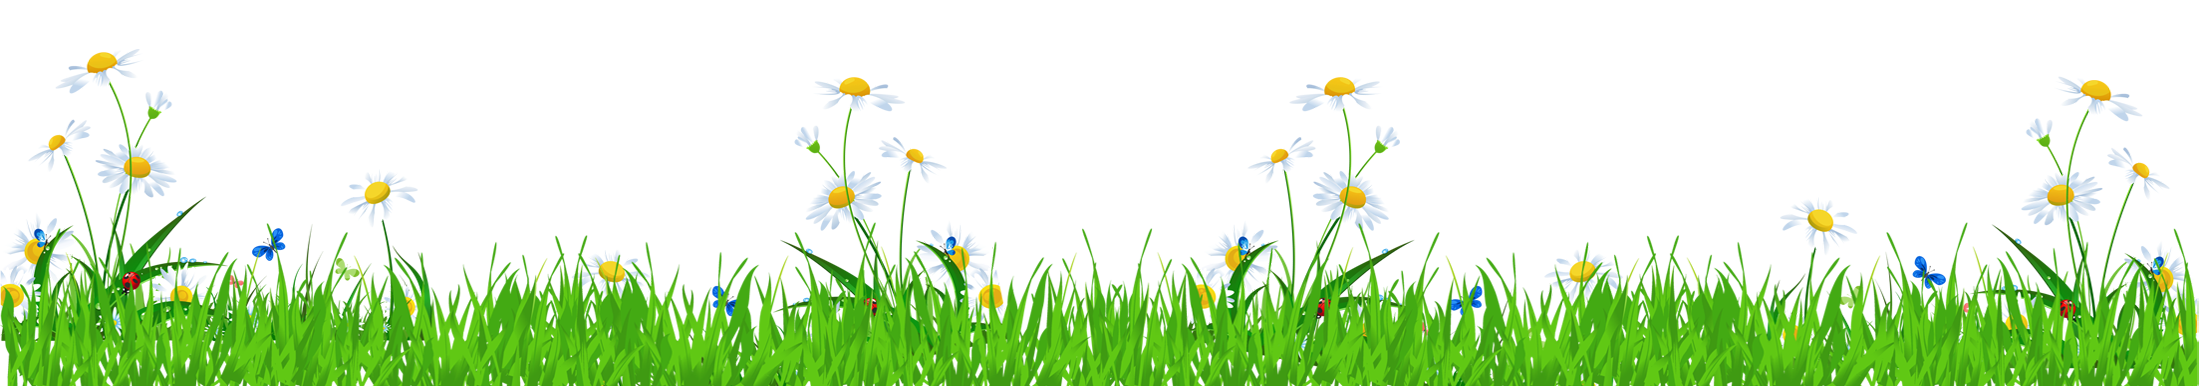 Sun and grass clipart clipart freeuse stock Ladybug grass clipart, explore pictures clipart freeuse stock